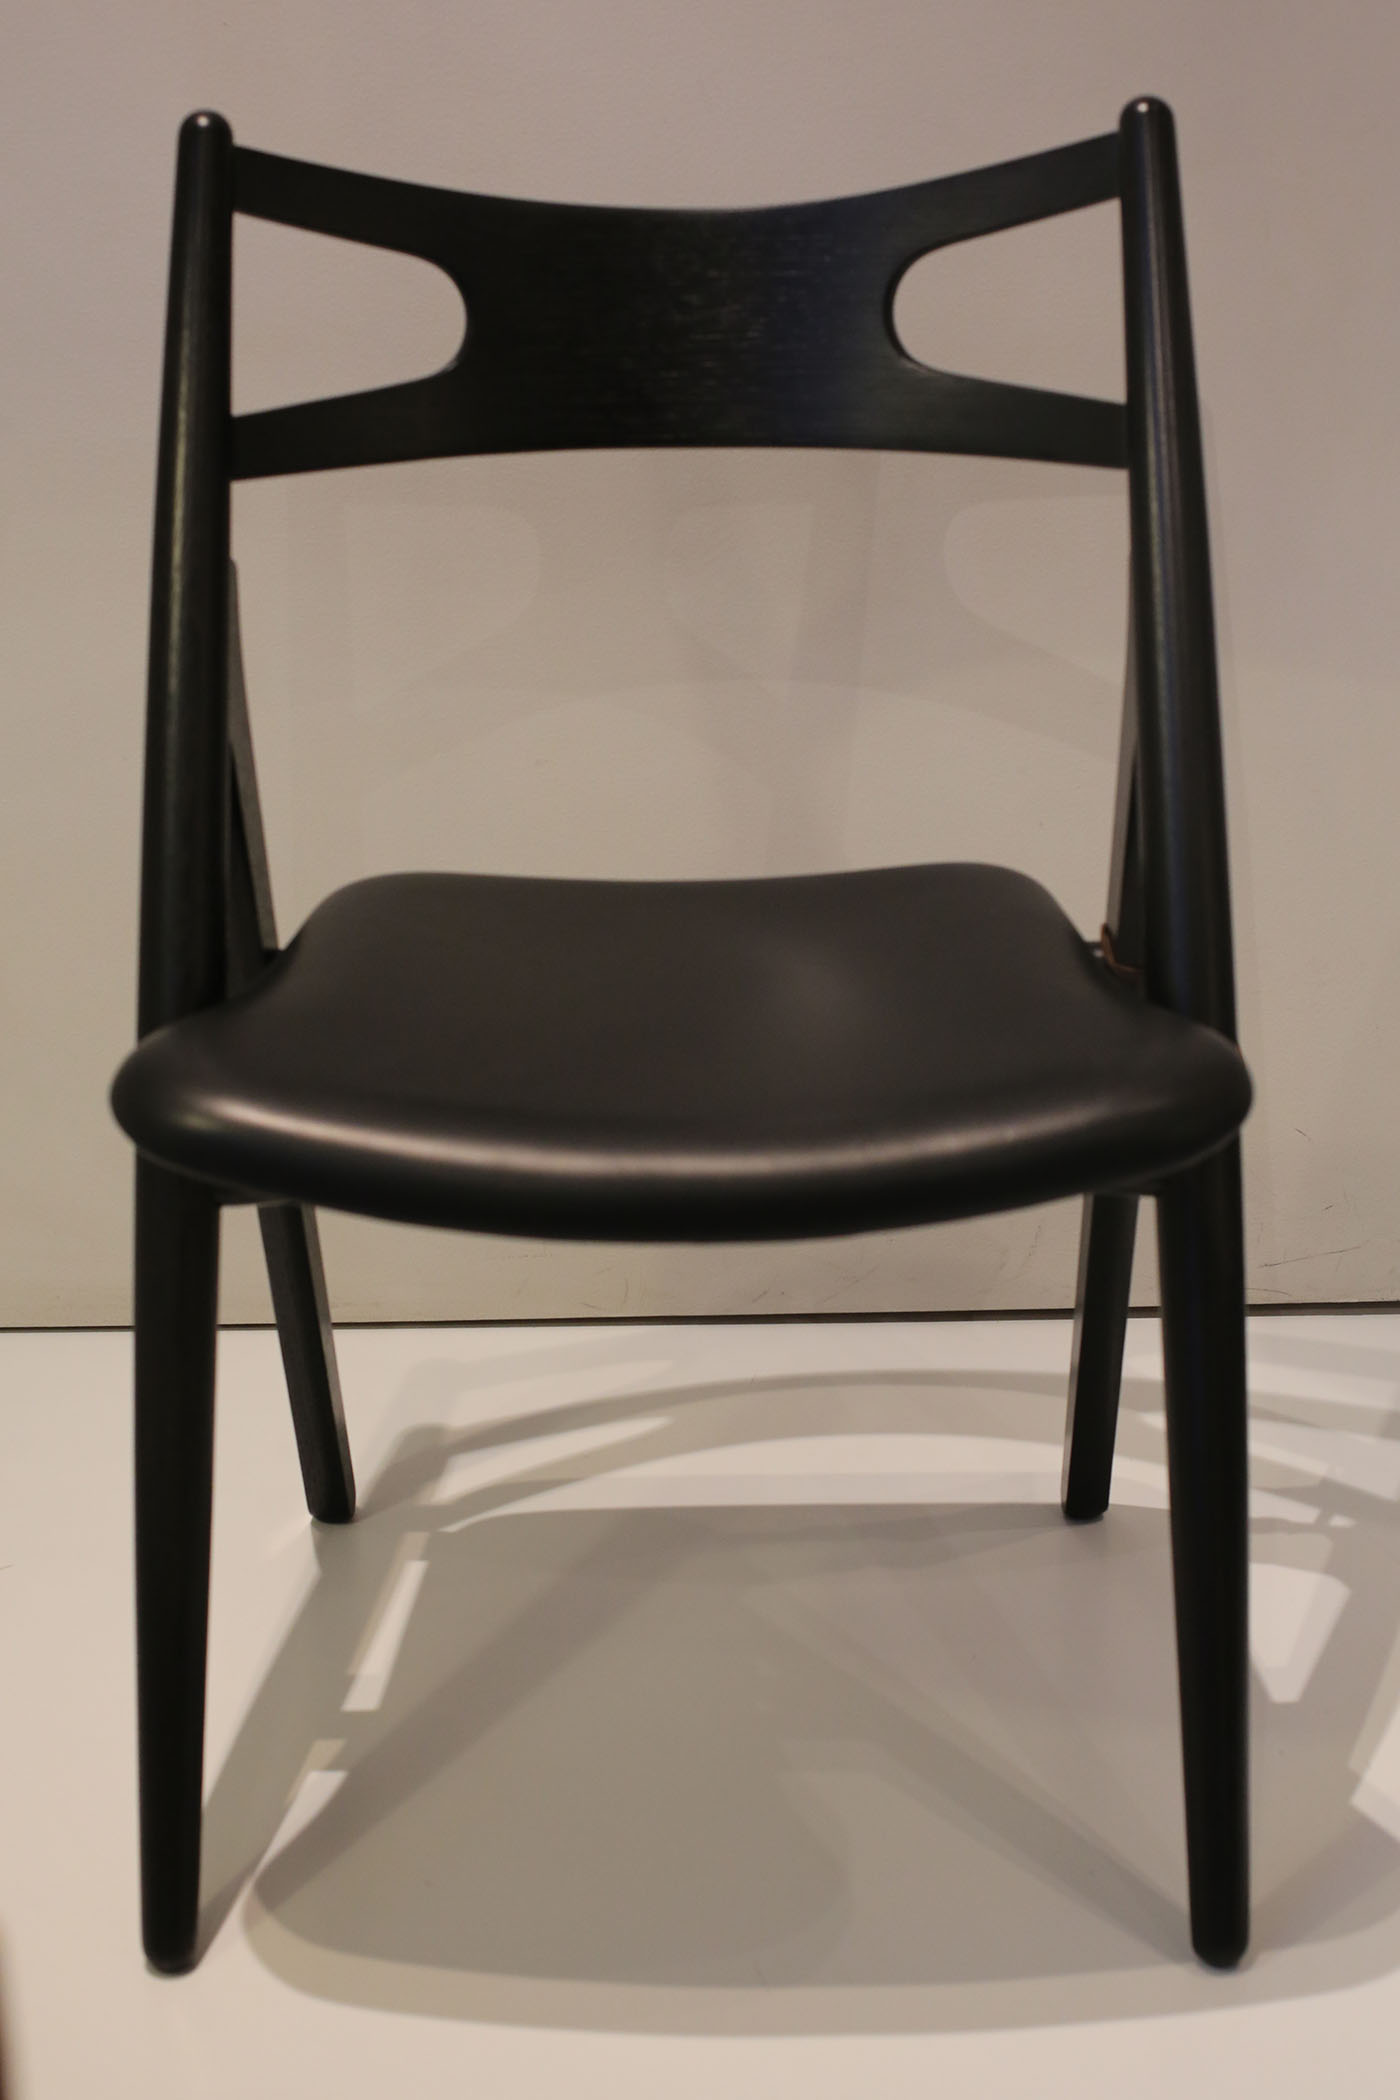 Black CH 29 or Sawbuck Chair by Hans Wegner Chairblog